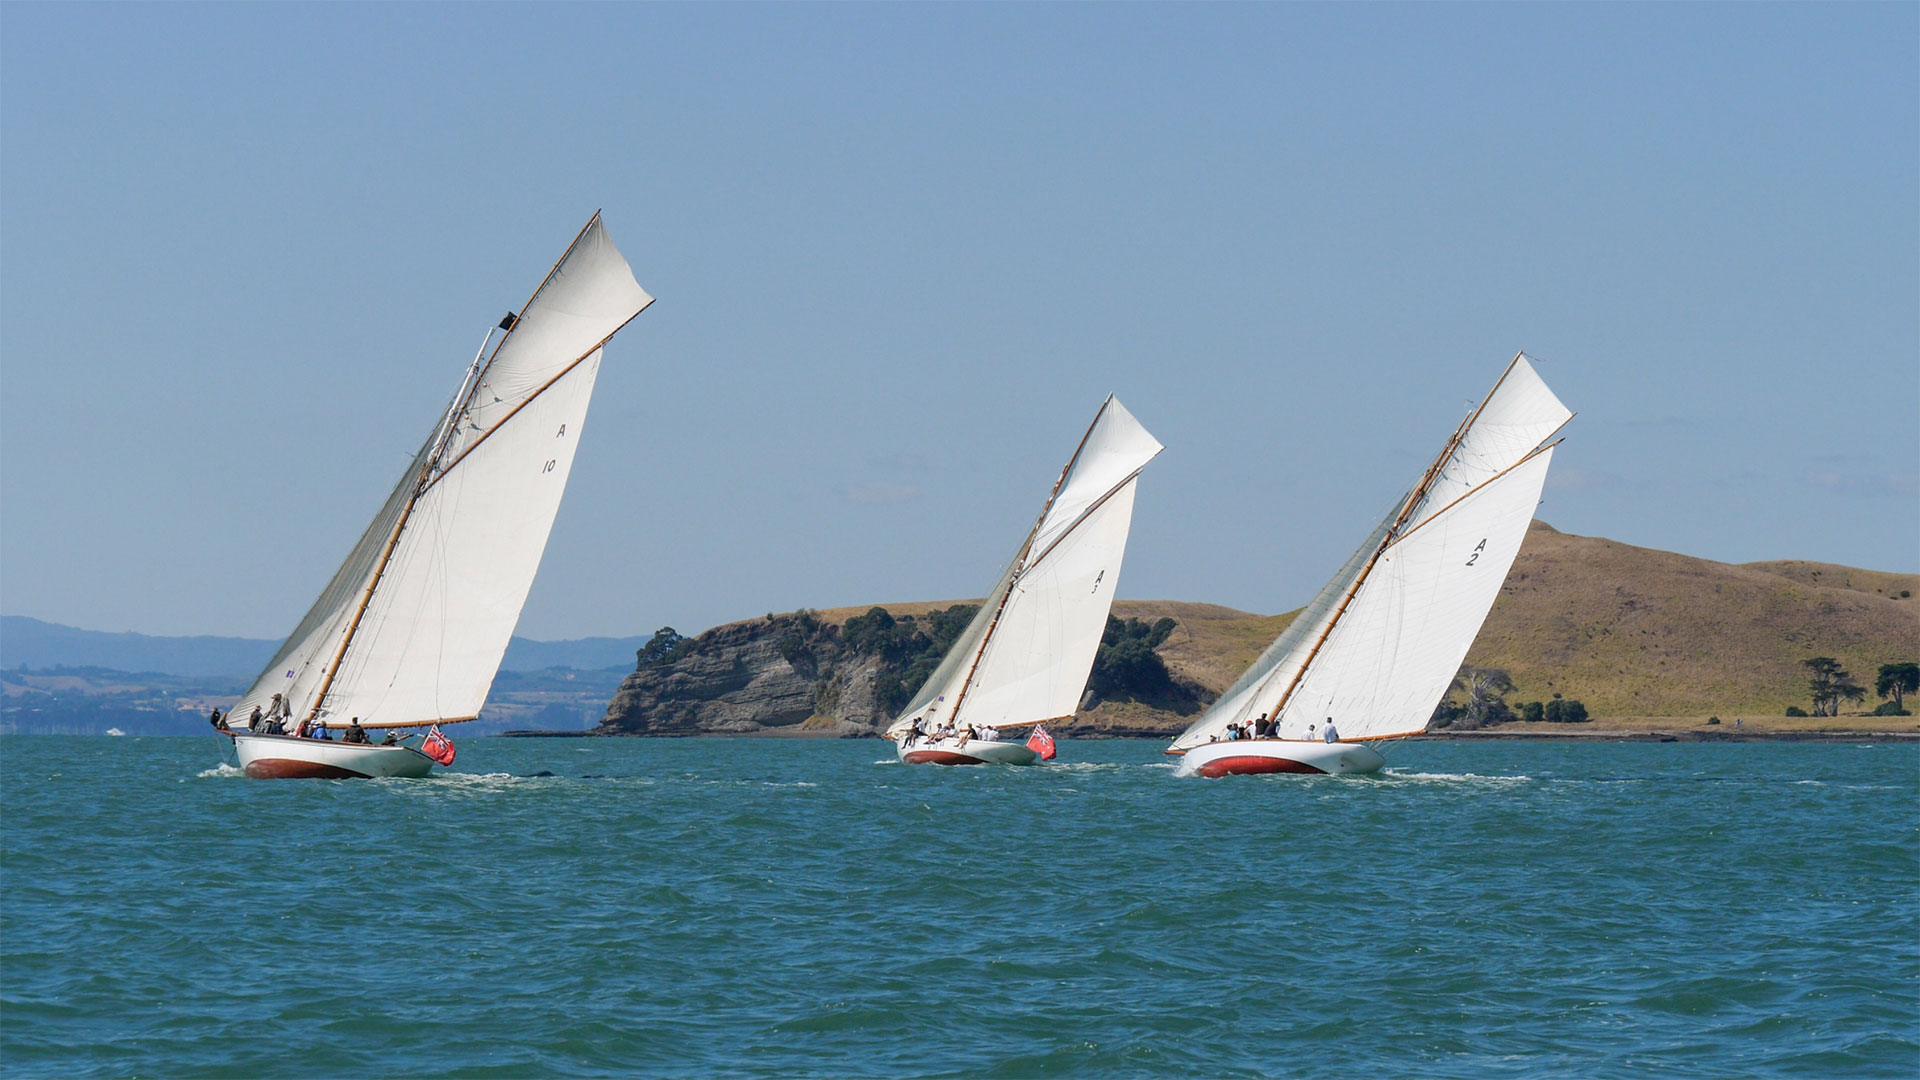 Winter series classic yacht racing